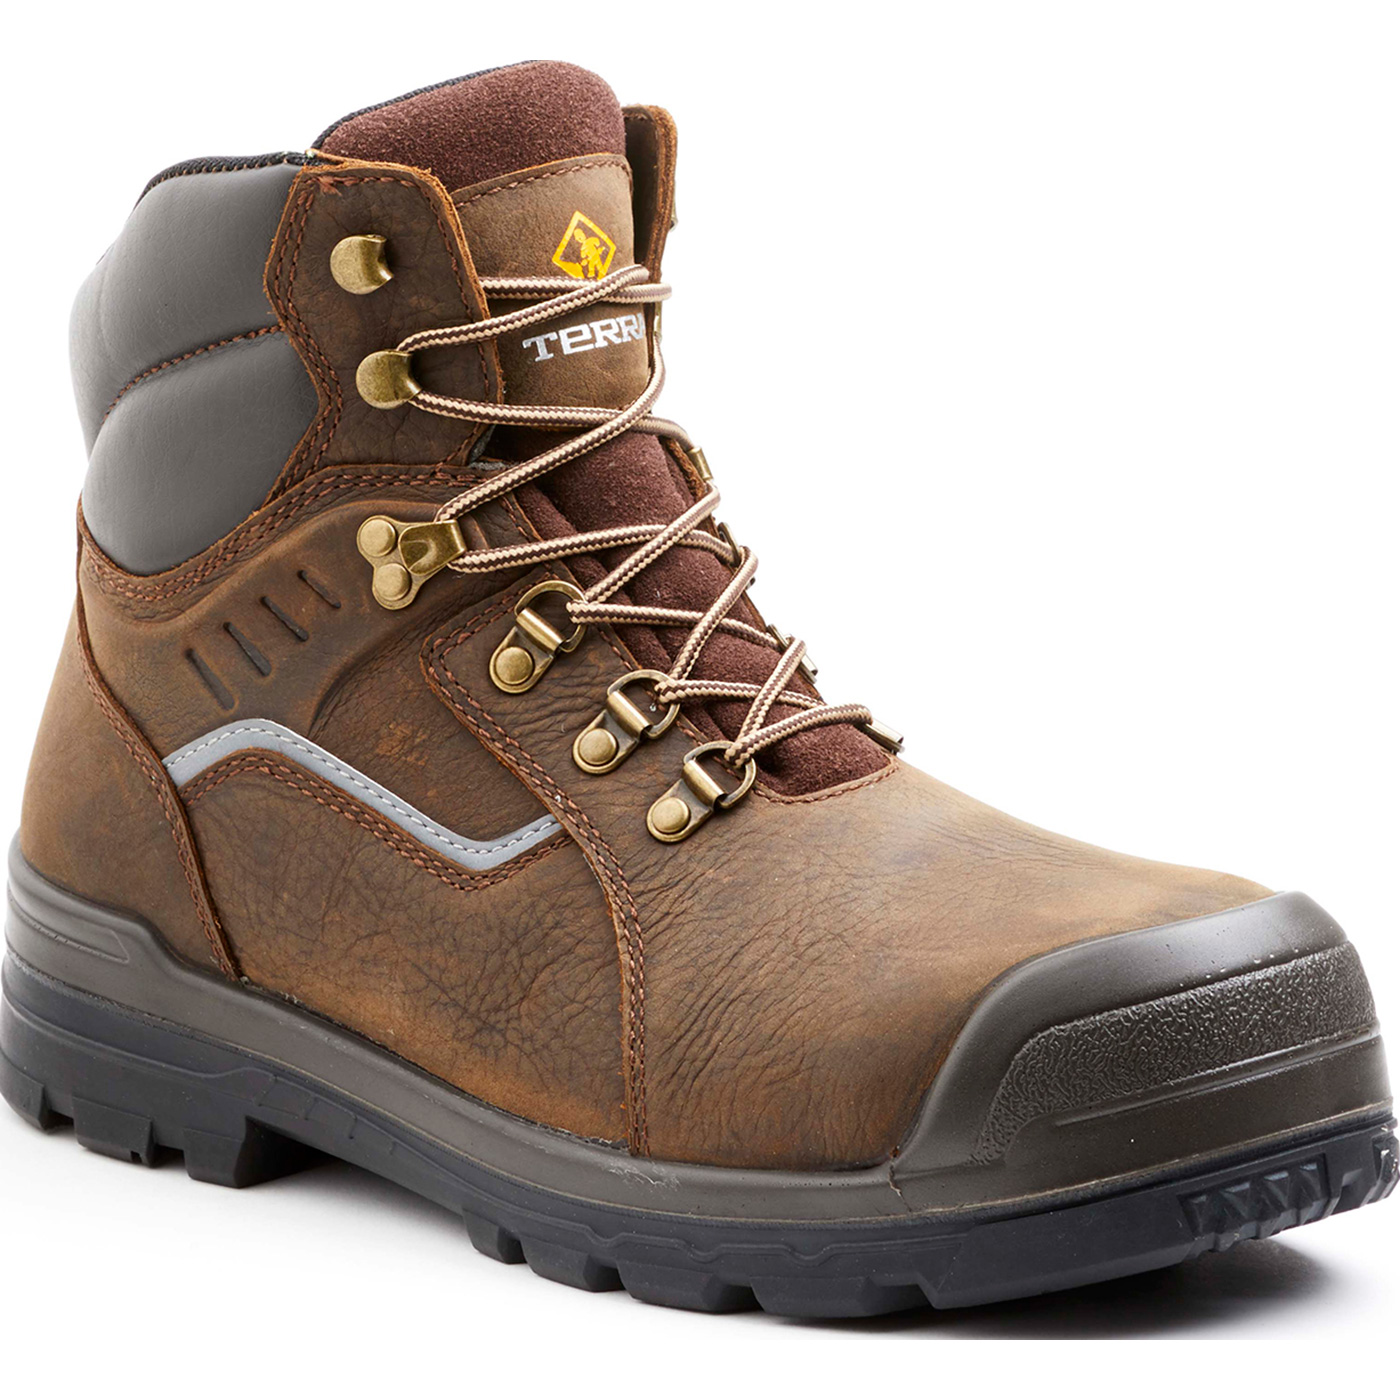 771c2a2e6ad Terra Condor Men's 6 inch Composite Toe CSA Puncture-Resistant Waterproof  Work Boot